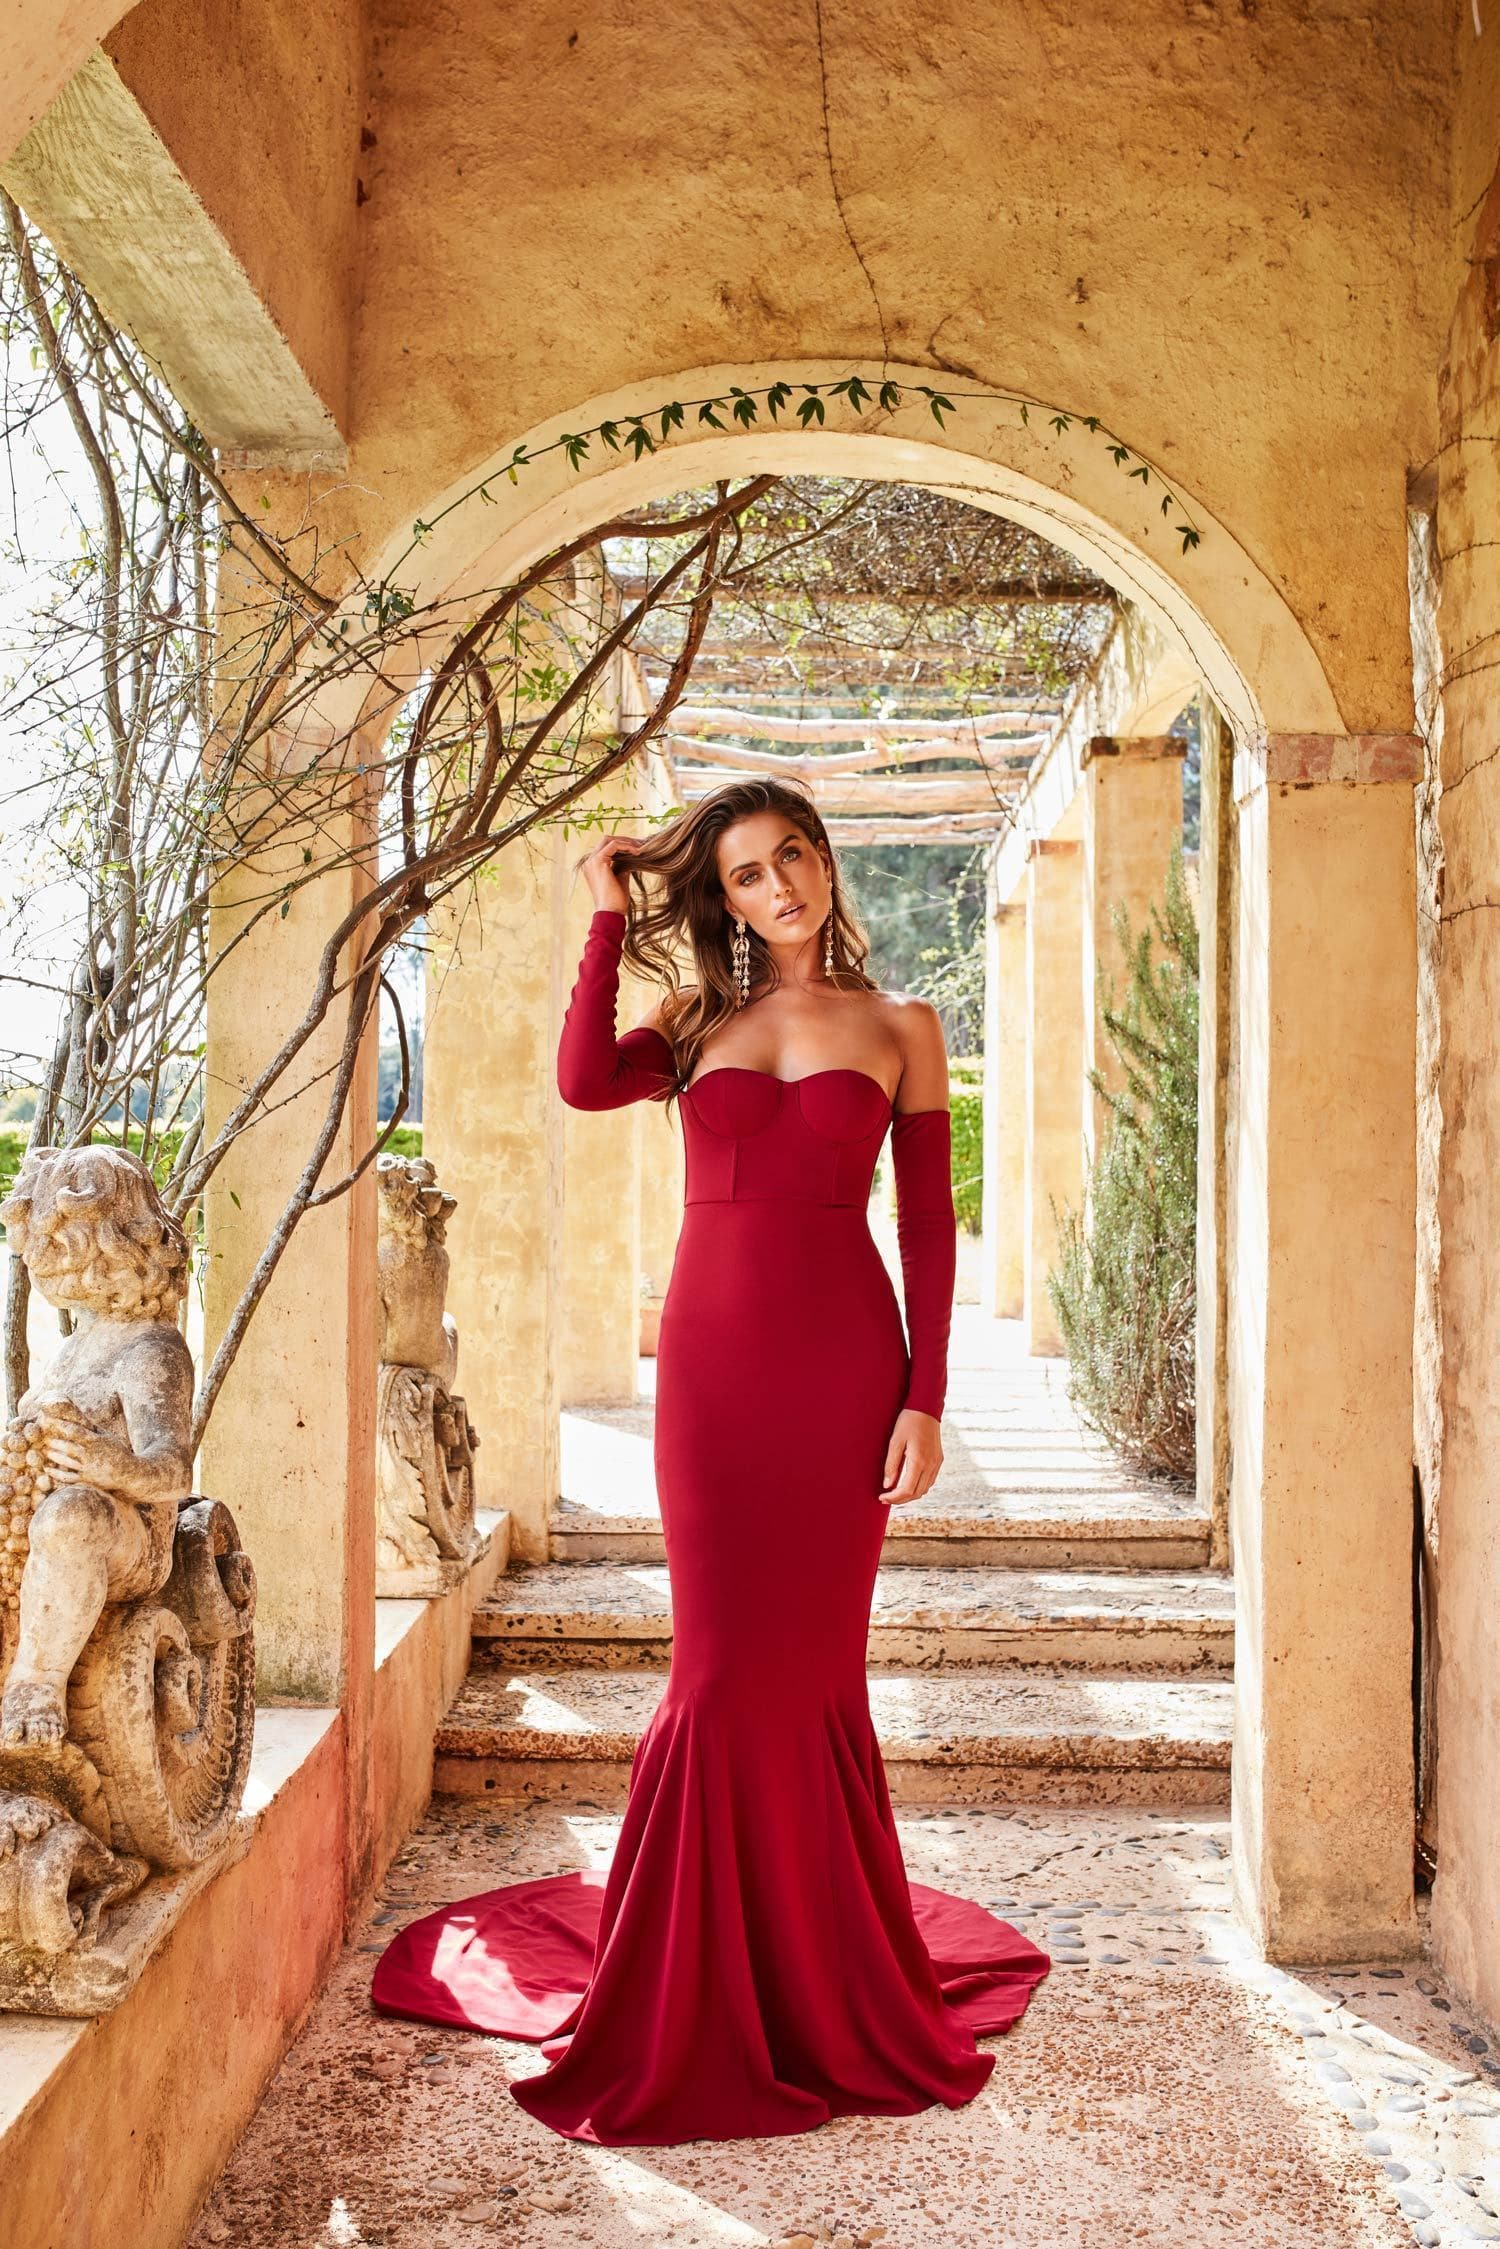 Salma - Wine Red Off Shoulder Dress in Crepe Fabric with Long Sleeves